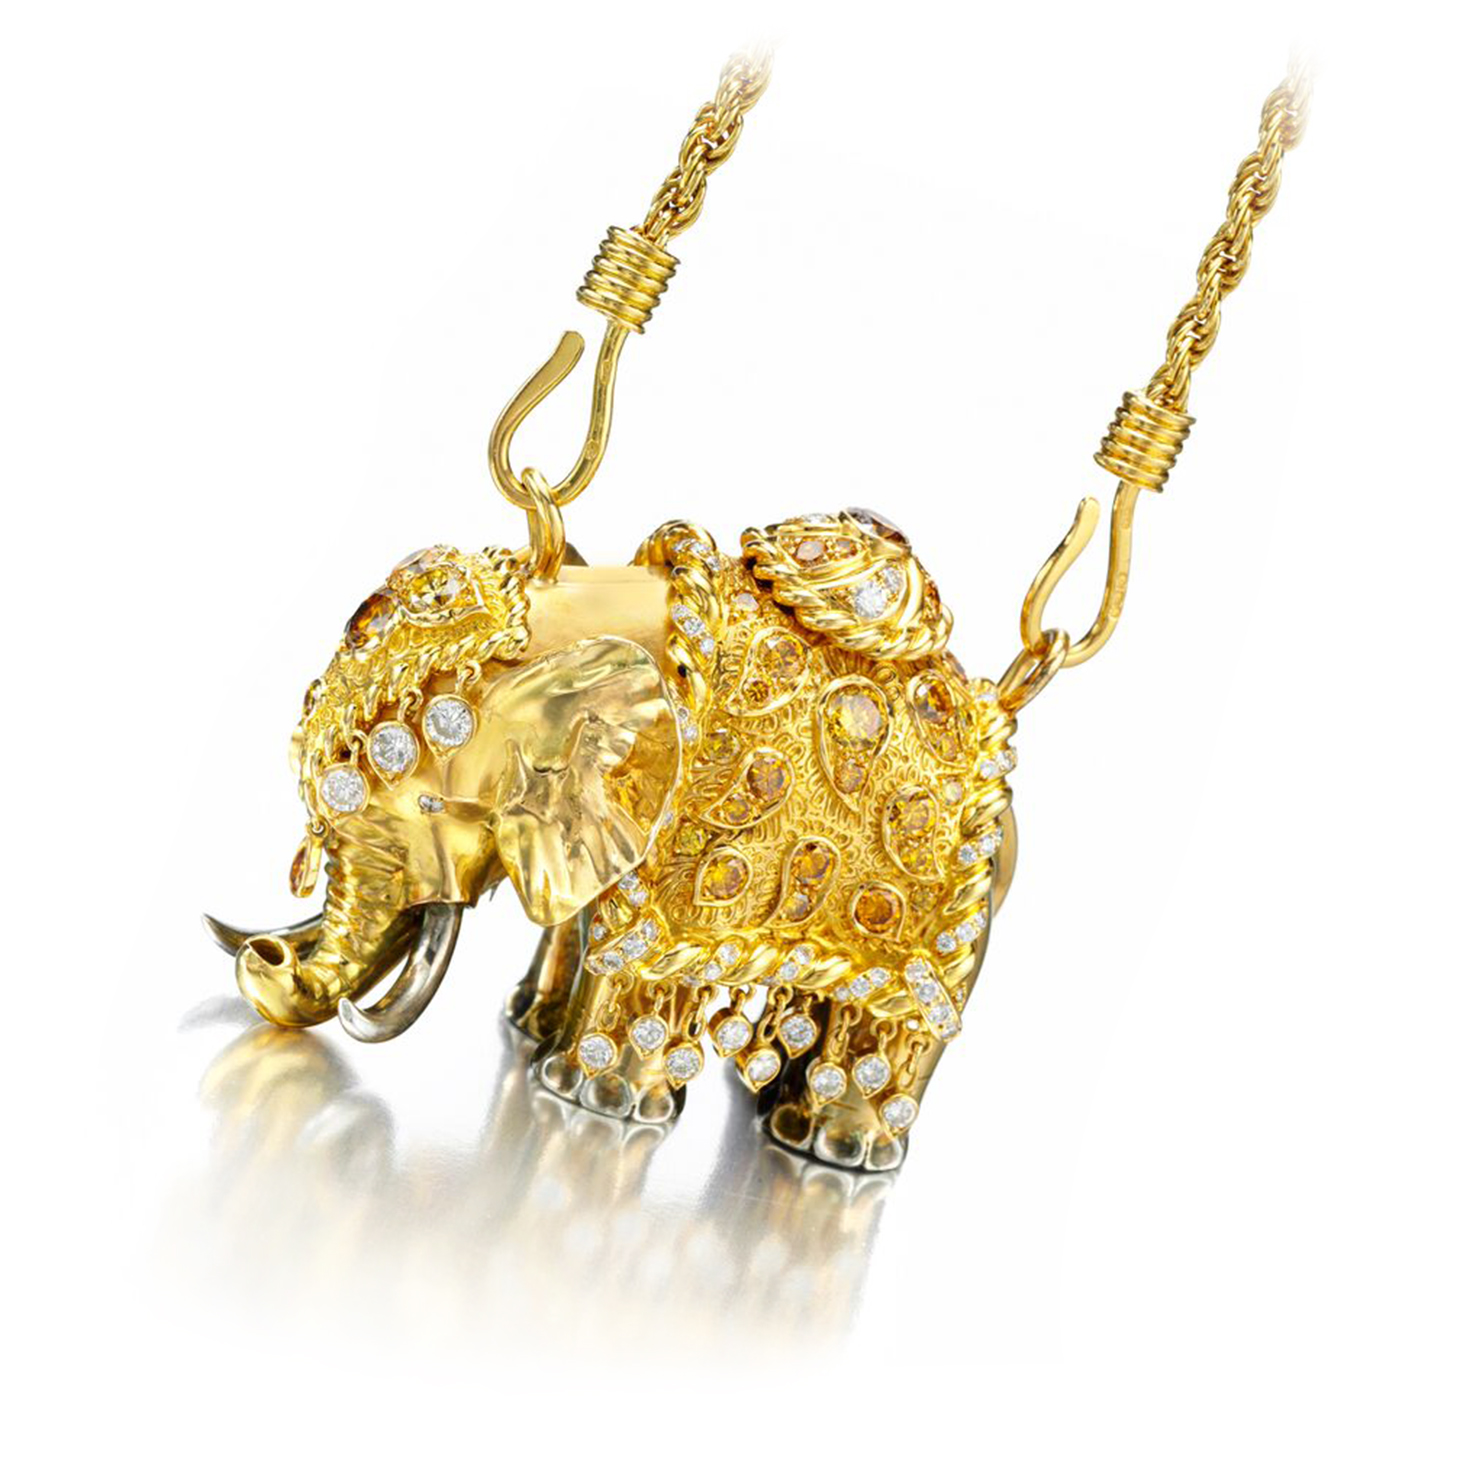 A Colored Diamond and Gold 'Elephant' Necklace, by Rene Boivin, circa 1960